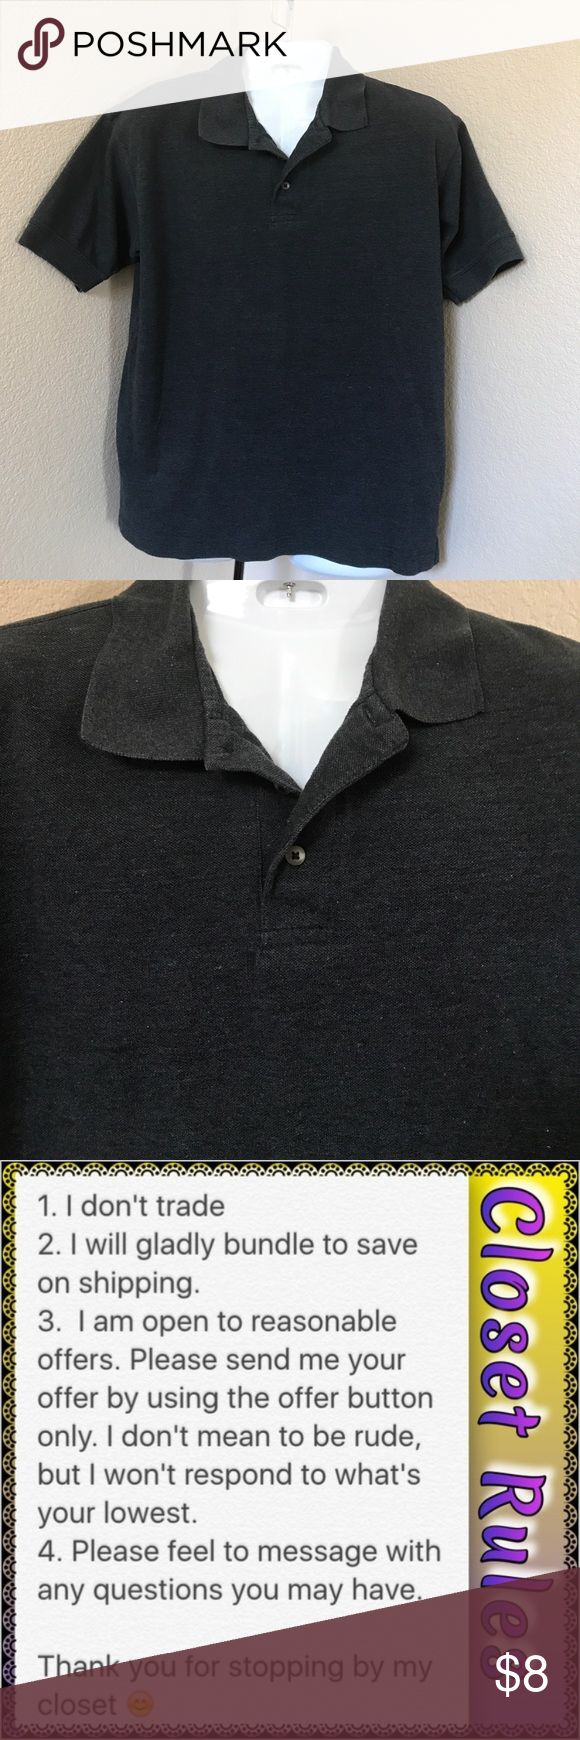 Pre-Used Men's Shirt Good used condition, this shirt has lots of life left in him😊 I see no stain or tears.            Please see all pictures, and read all info prior to purchasing  If there is an issue with the order, please message me before leaving a negative feedback, I'd like the opportunity to address the issue.  1. Smoke Free Home 2. Puppy friendly home.  3. If you are allergic to dog hair and would like to still purchase, please notify me so I can take extra precautions. Houston…